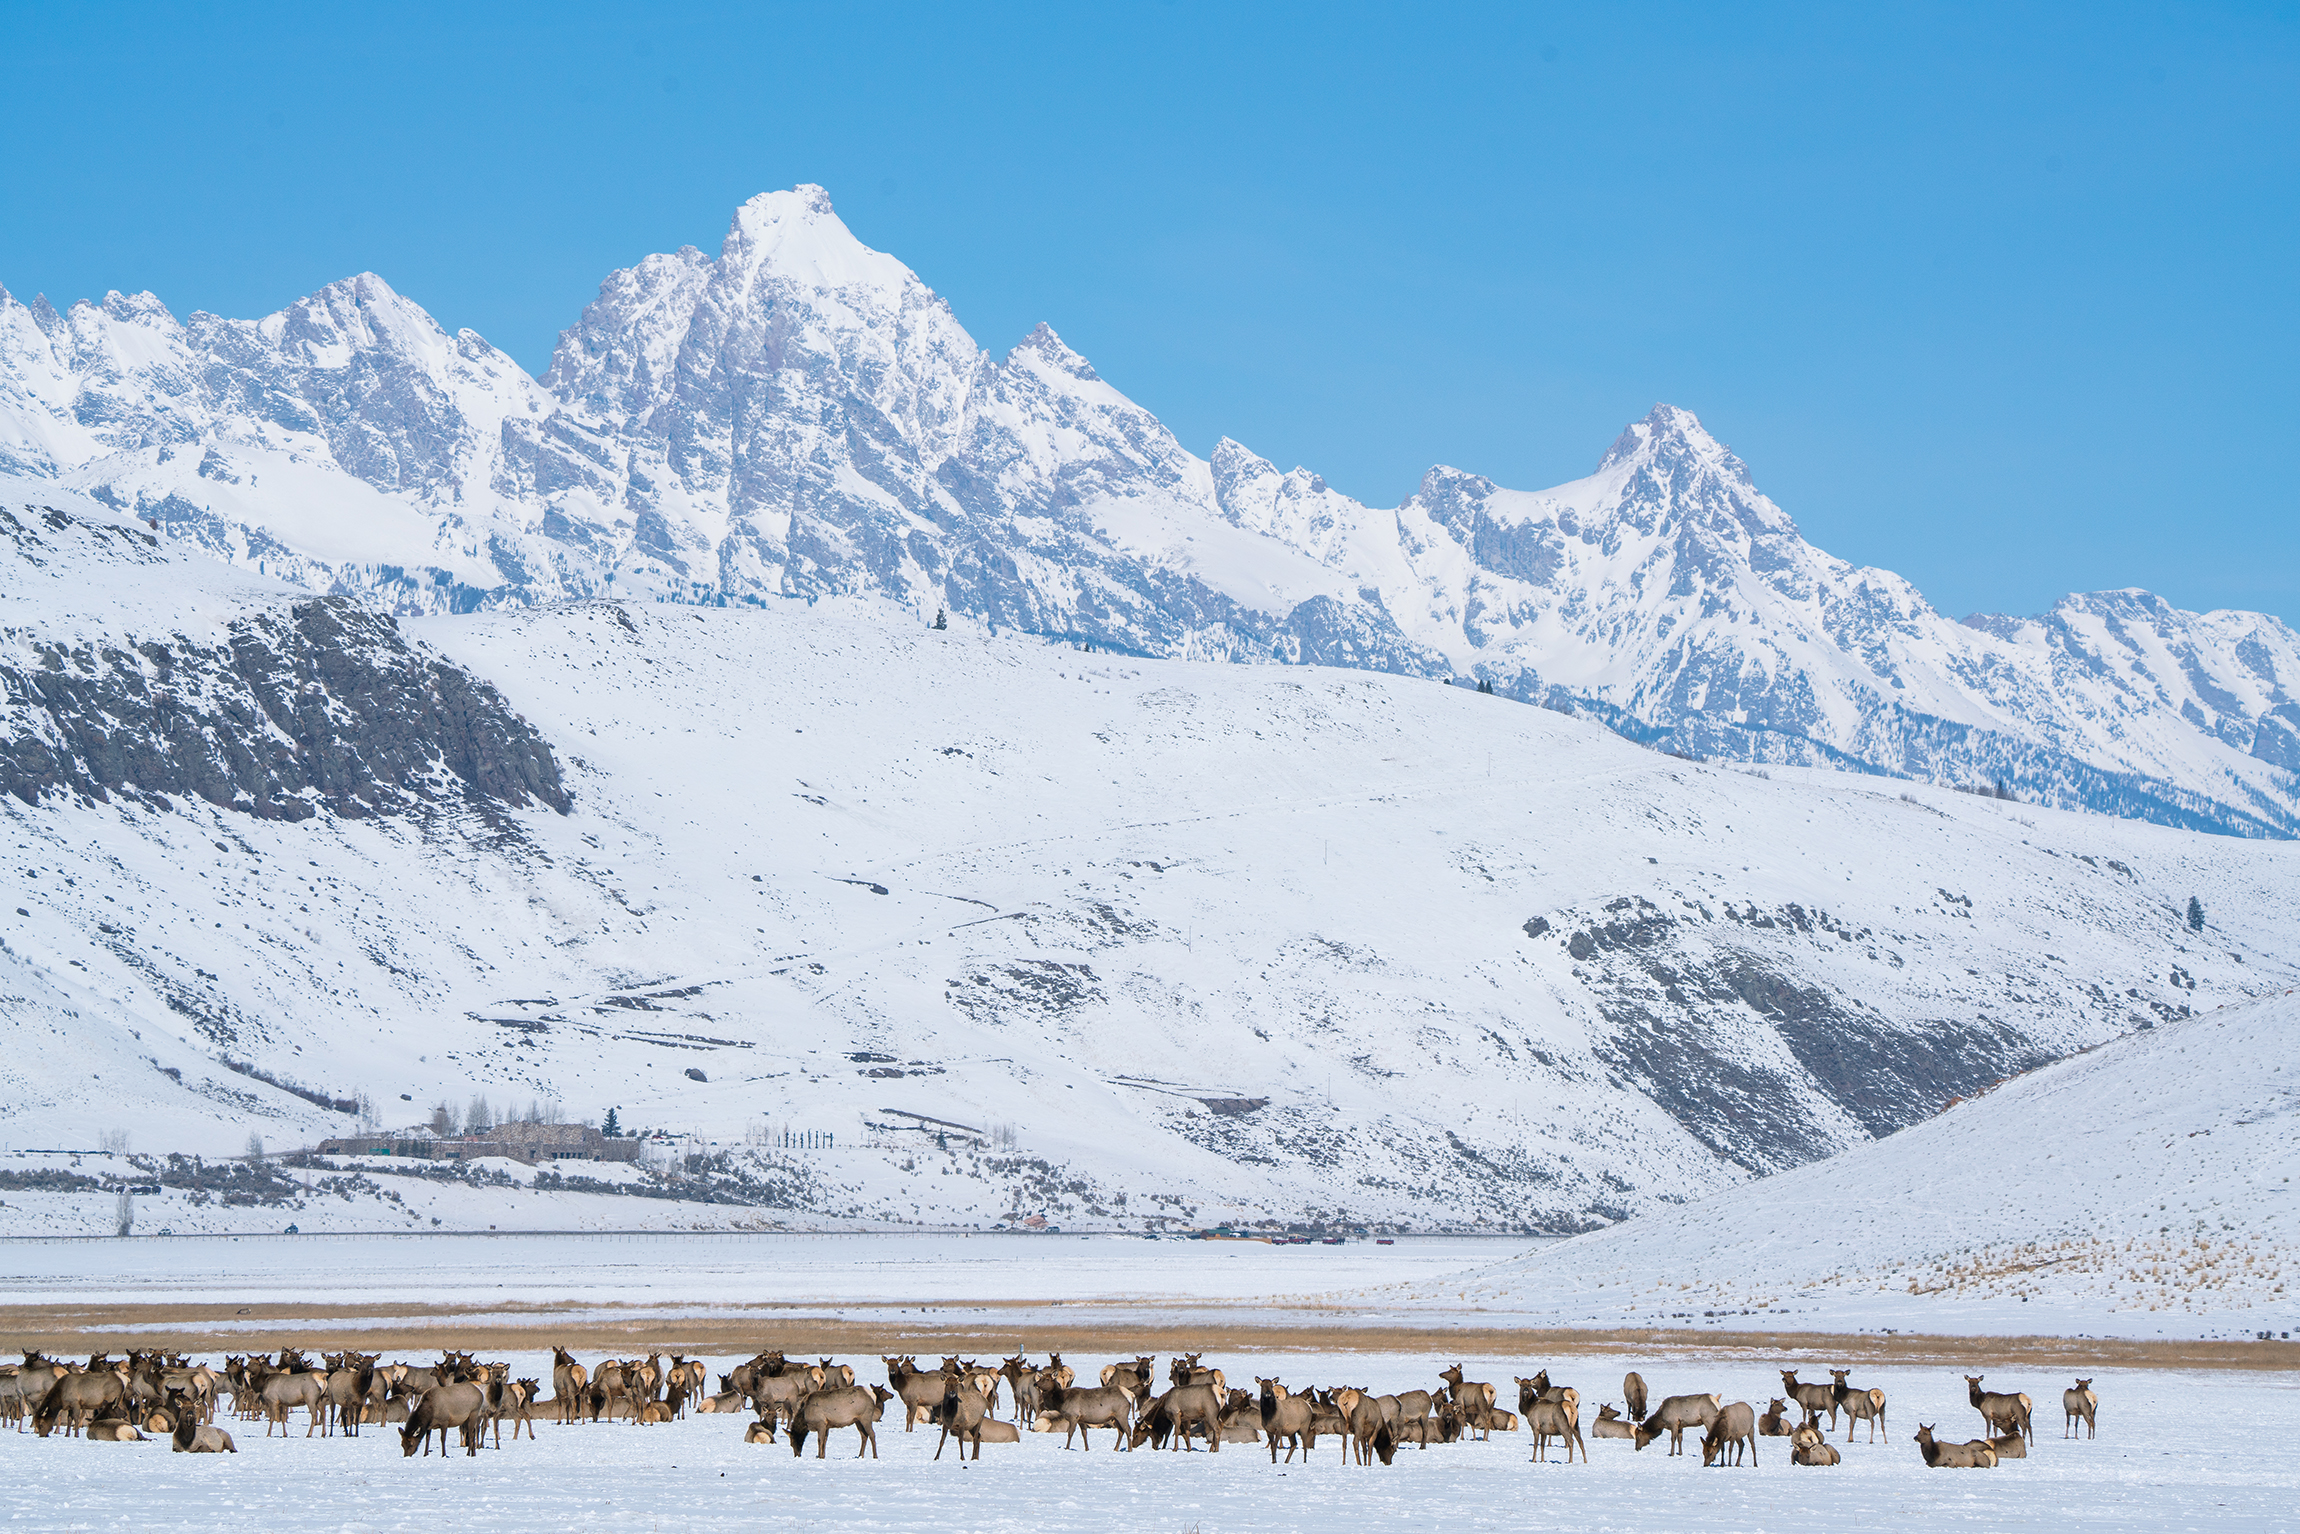 #elk, #snow, #mountains, #herd, #sanctuary, #wildlife, #predators, #safe, #naature, #naturephotography, #grandtetonnationalpark, #jacksonhole